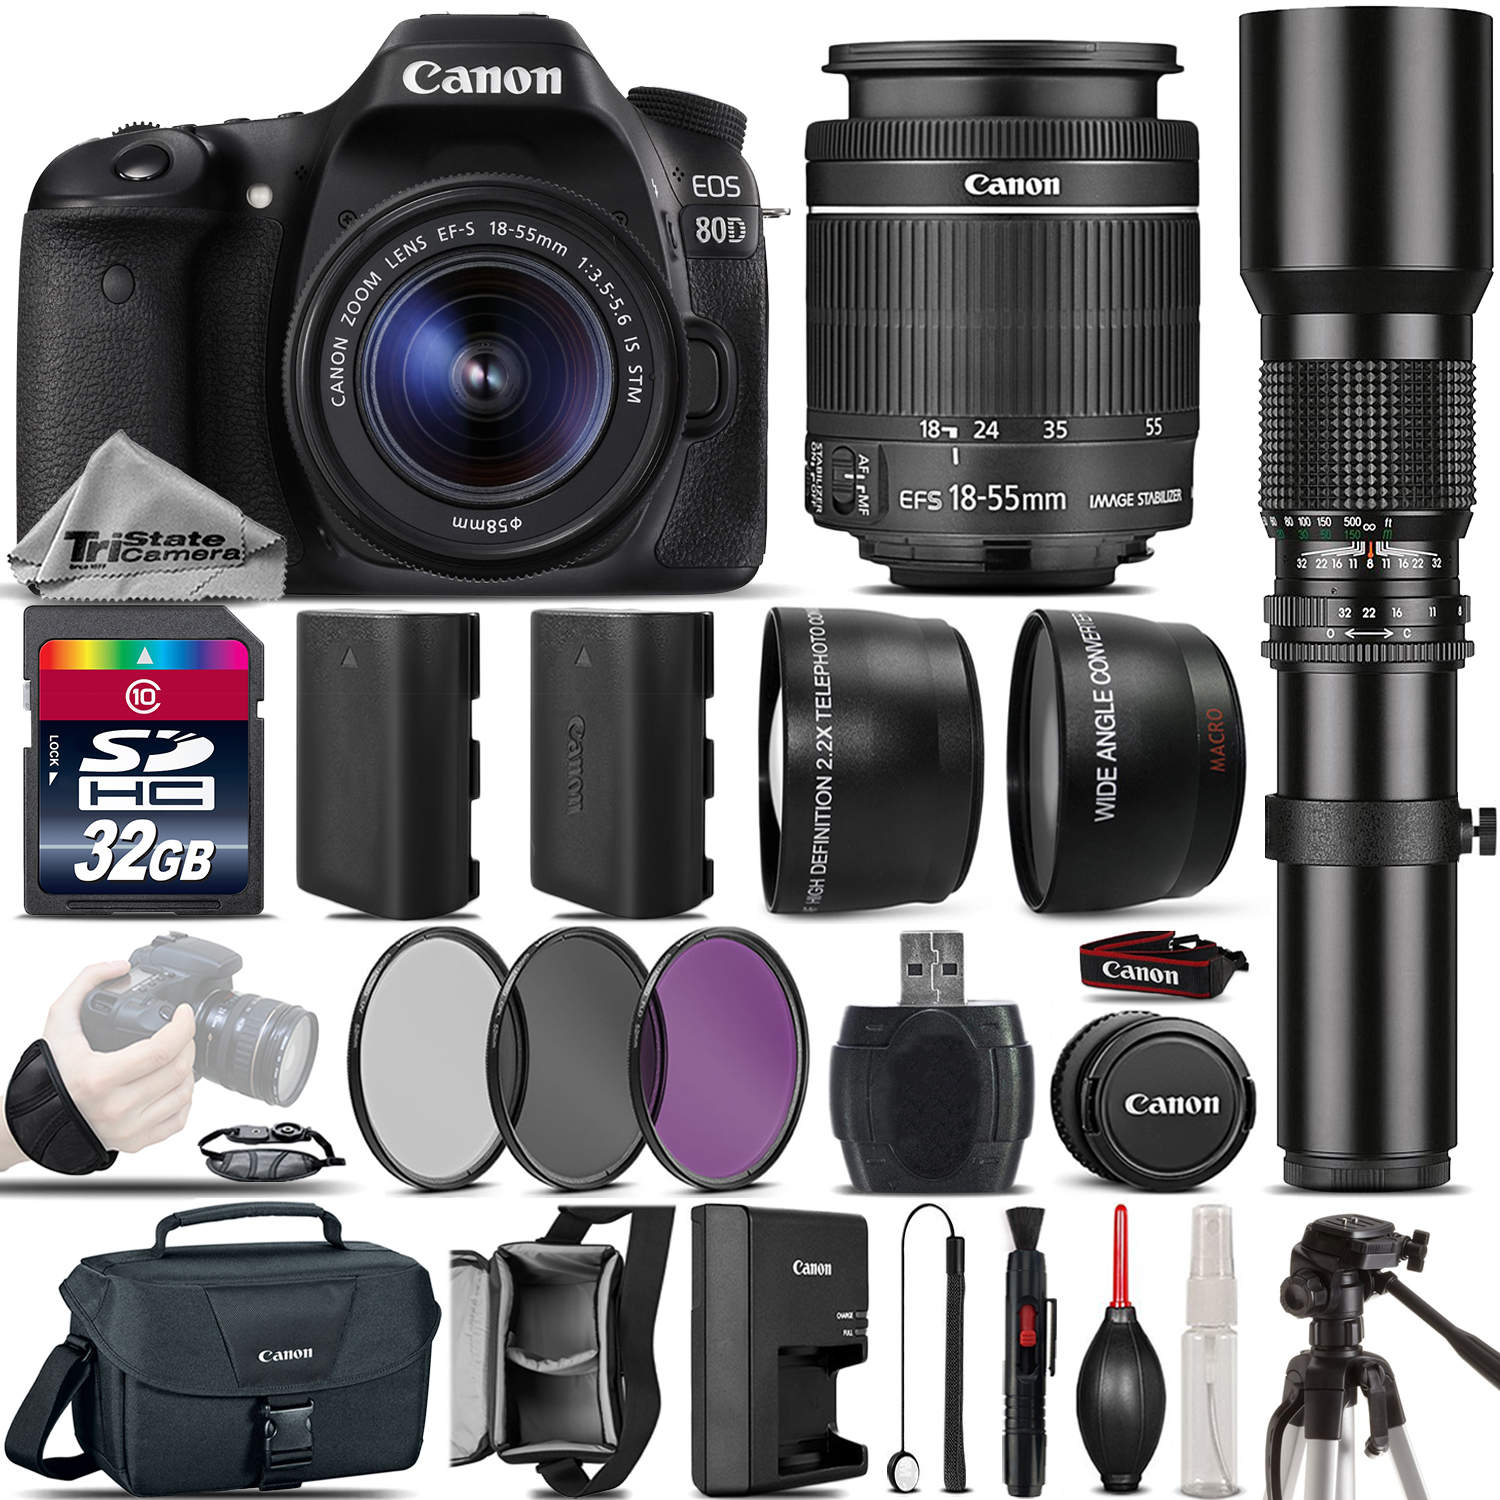 EOS 80D DSLR Camera + 18-55mm IS STM + 500mm Telephoto - Best Value Kit *FREE SHIPPING*